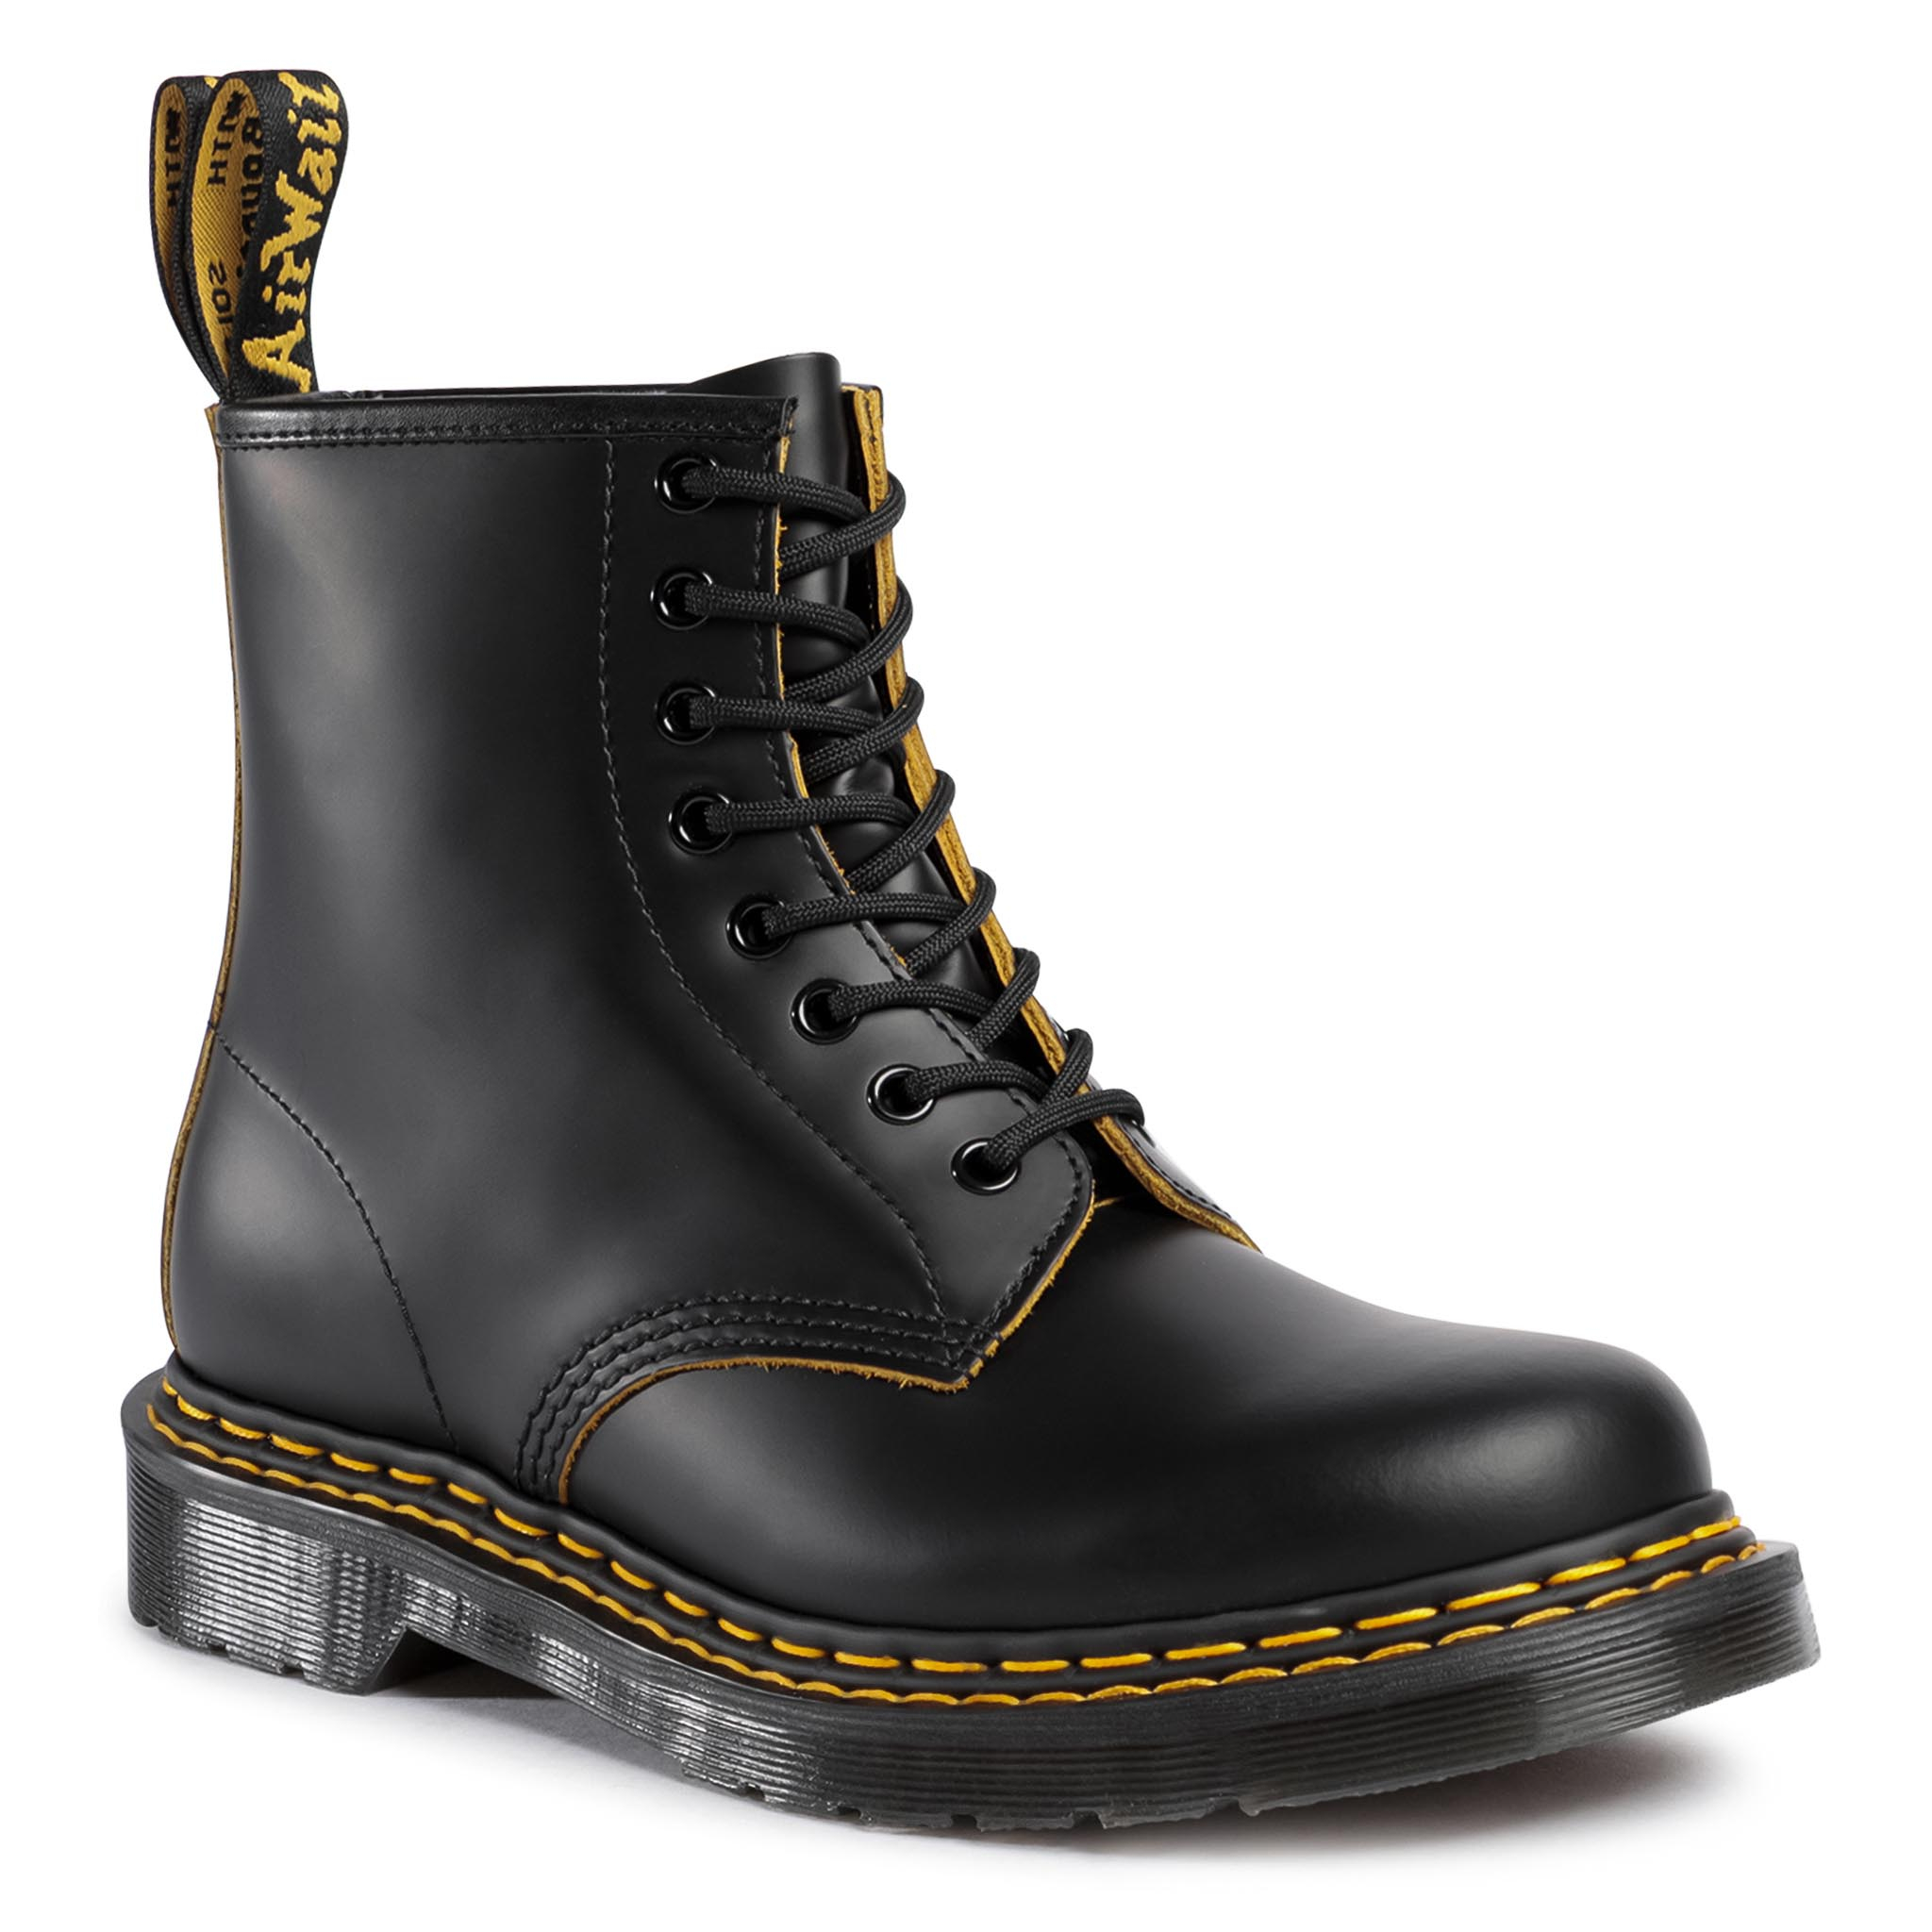 Image of Anfibi DR. MARTENS - 1460 Ds 26100032 Black/Yellow